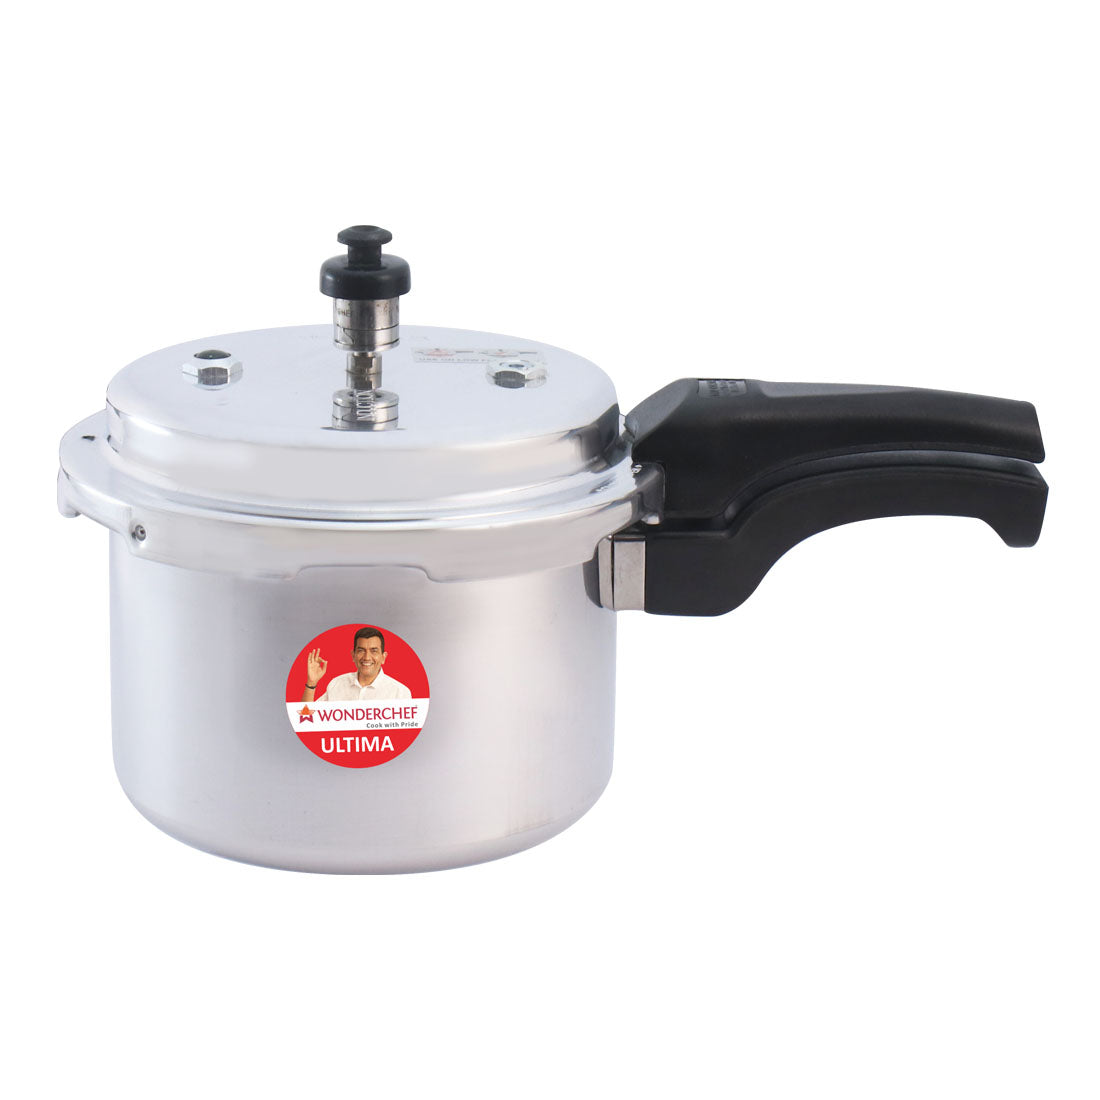 Wonderchef Ultima Pressure Cooker Outer Lid 3L